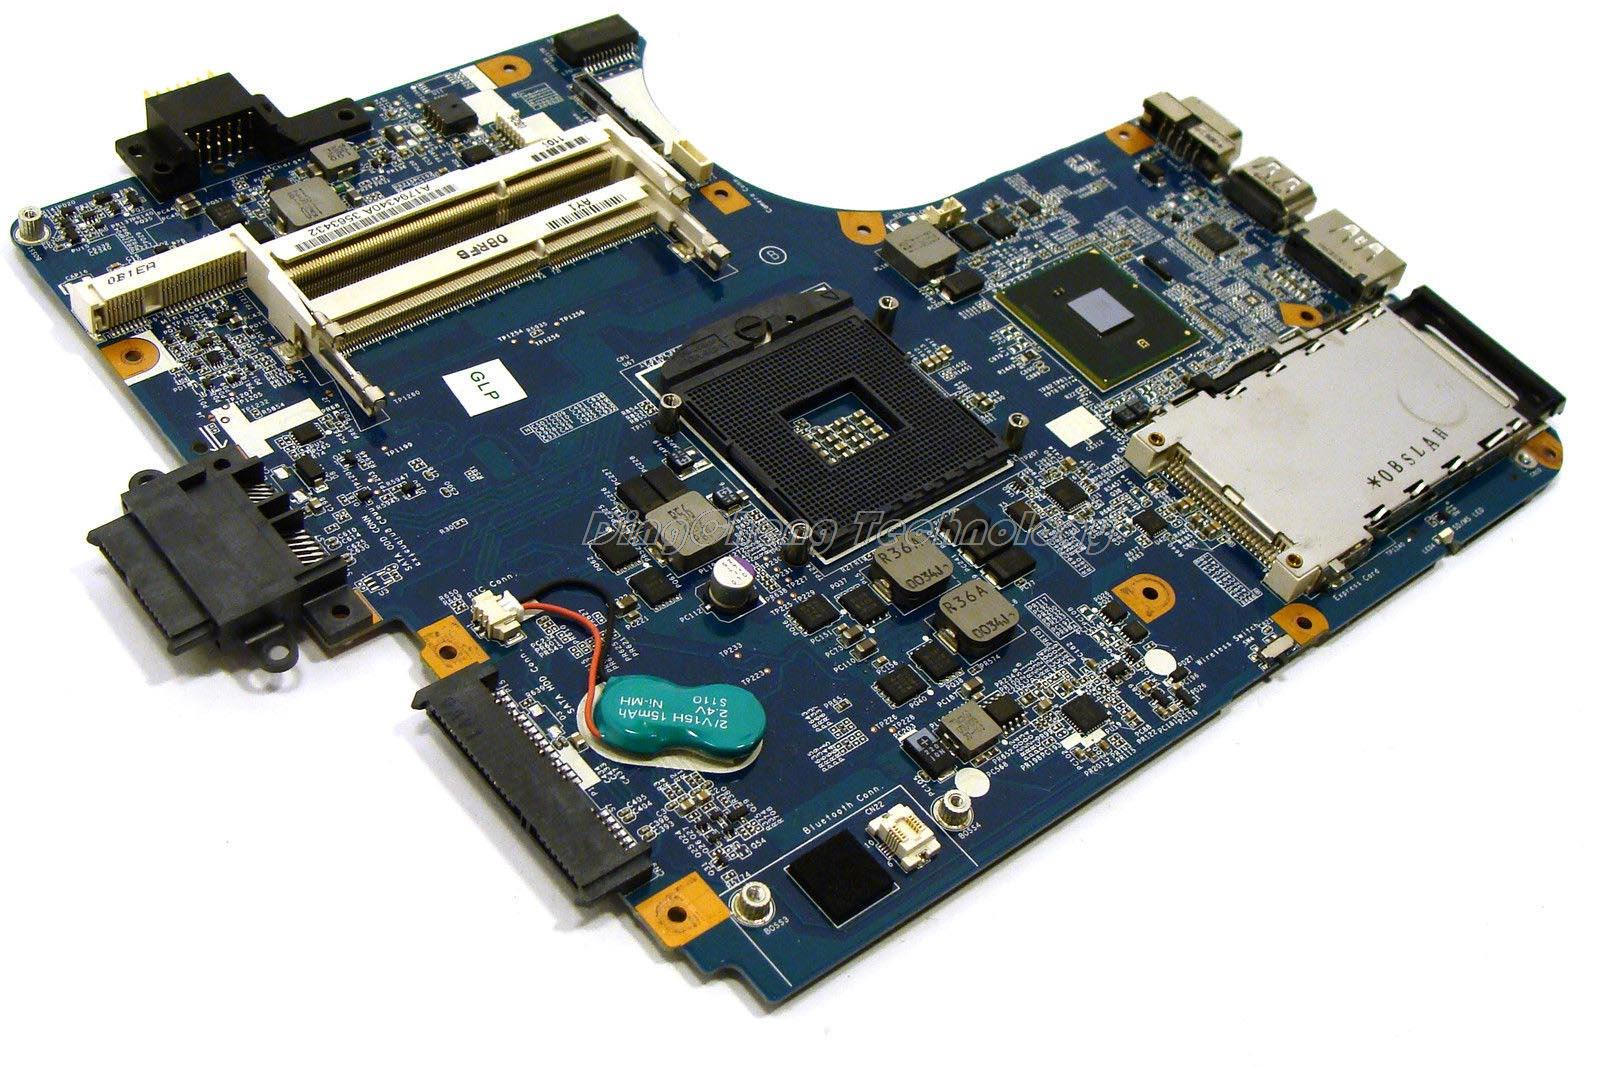 HOLYTIME MBX 223 laptop Motherboard For Sony M971 MBX-223 1P-0106J00-6011 A1794340A REV 1.1 with integrated graphics cardHOLYTIME MBX 223 laptop Motherboard For Sony M971 MBX-223 1P-0106J00-6011 A1794340A REV 1.1 with integrated graphics card